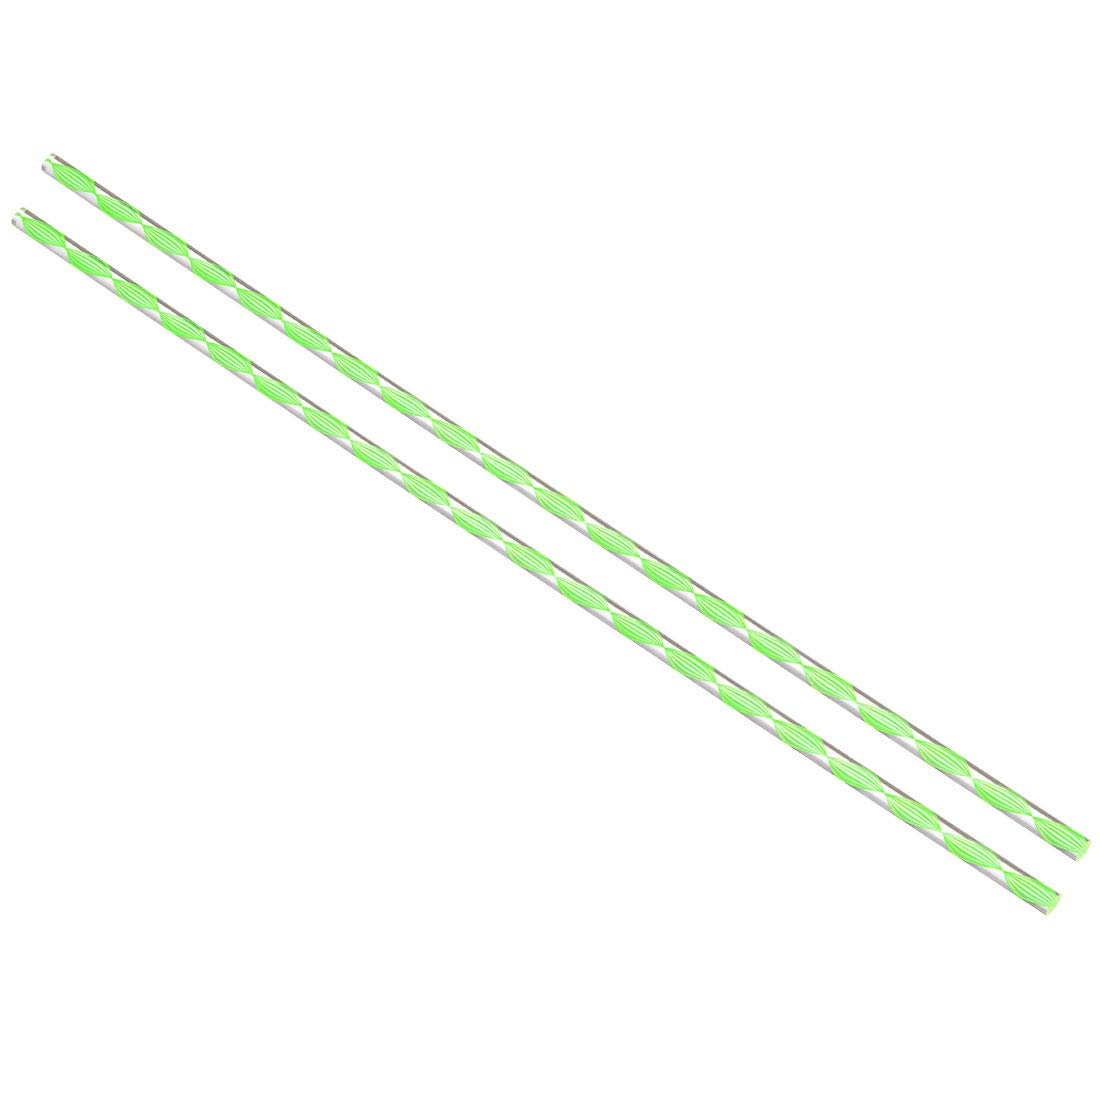 uxcell Acrylic Round Rod,3/8 inch Diameter 20 inch Length,Spiral Green Line,Solid Plxi Glass Plastic Lucite PMMA Bar Stick 2pcs